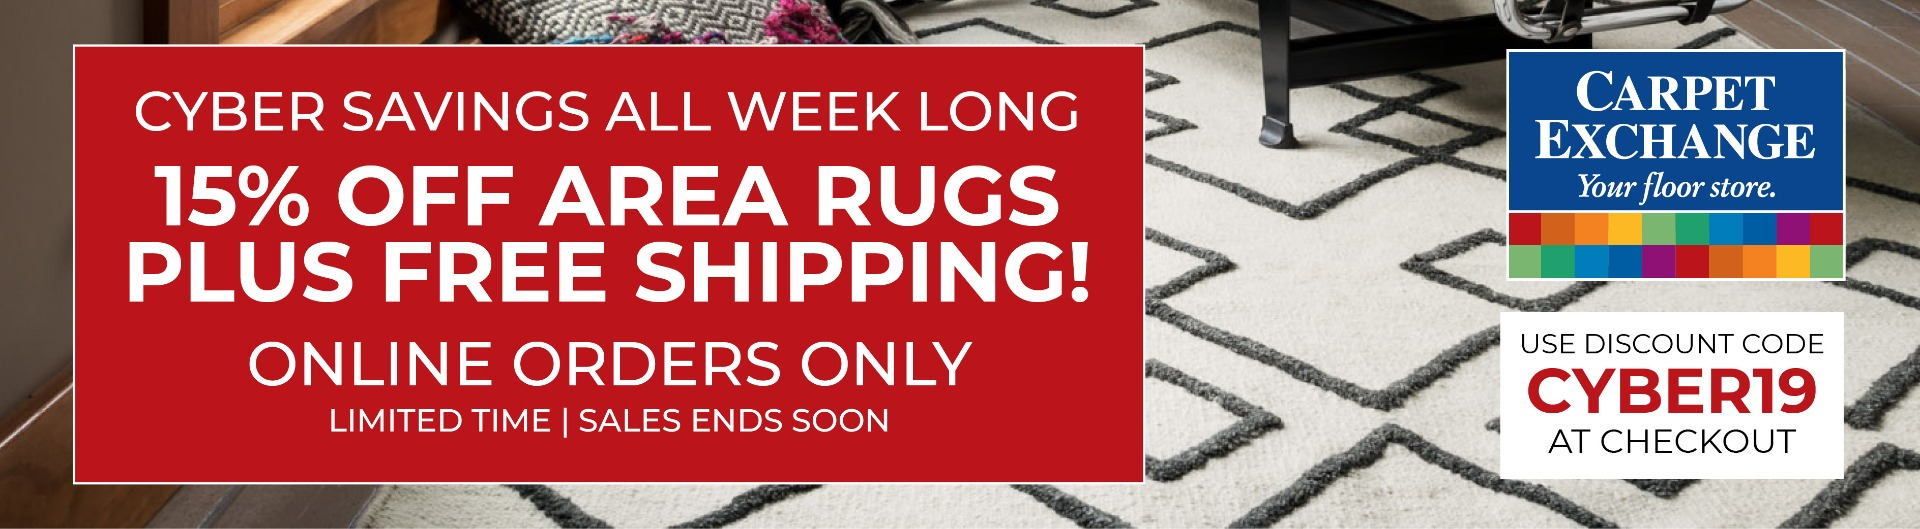 Cyber Week Savings - 15% Off Area Rugs, Plus Free Shipping!